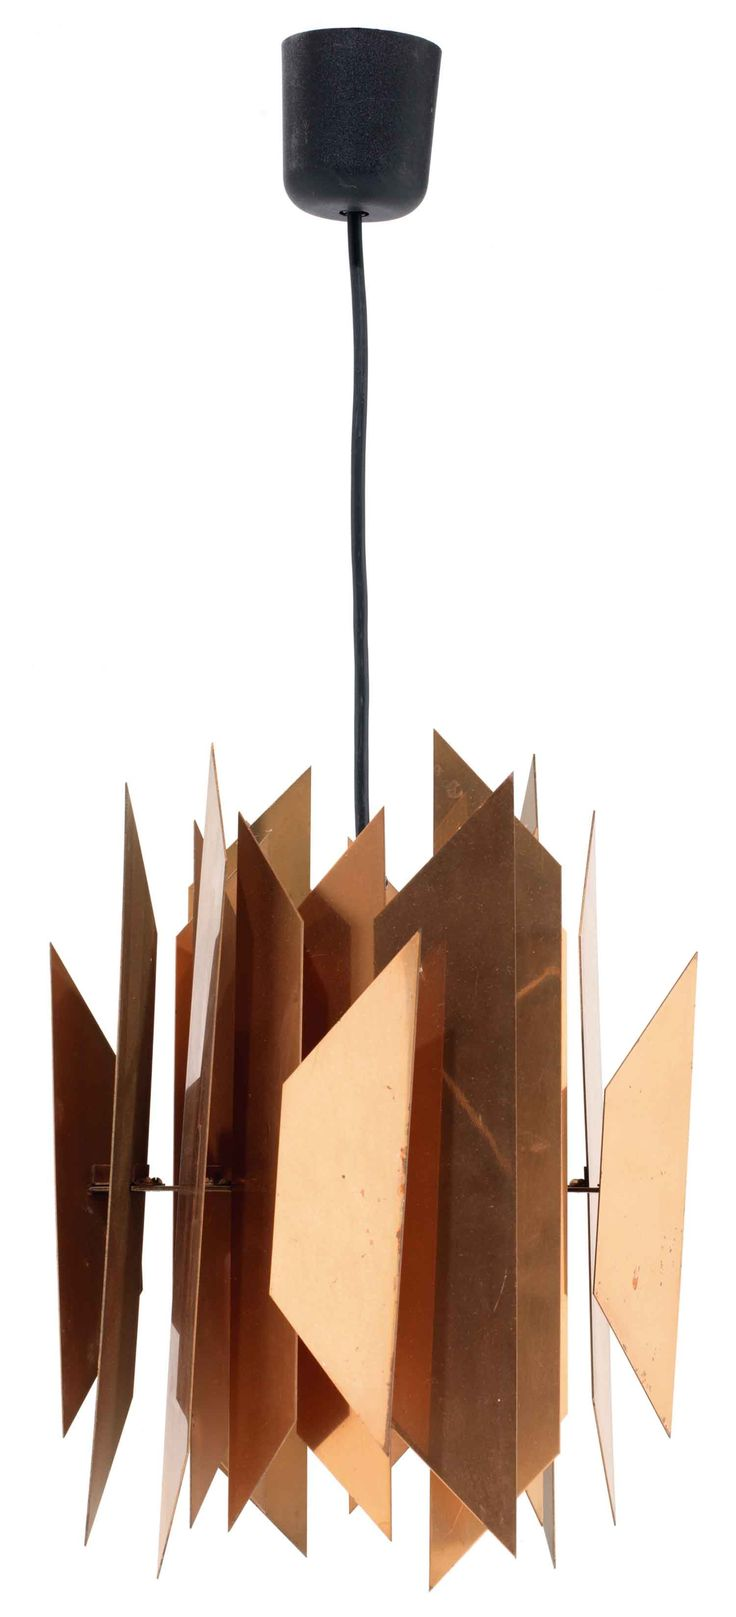 Poul Henningsen; Copper Prototype Ceiling Light for Lyfa, 1960s.